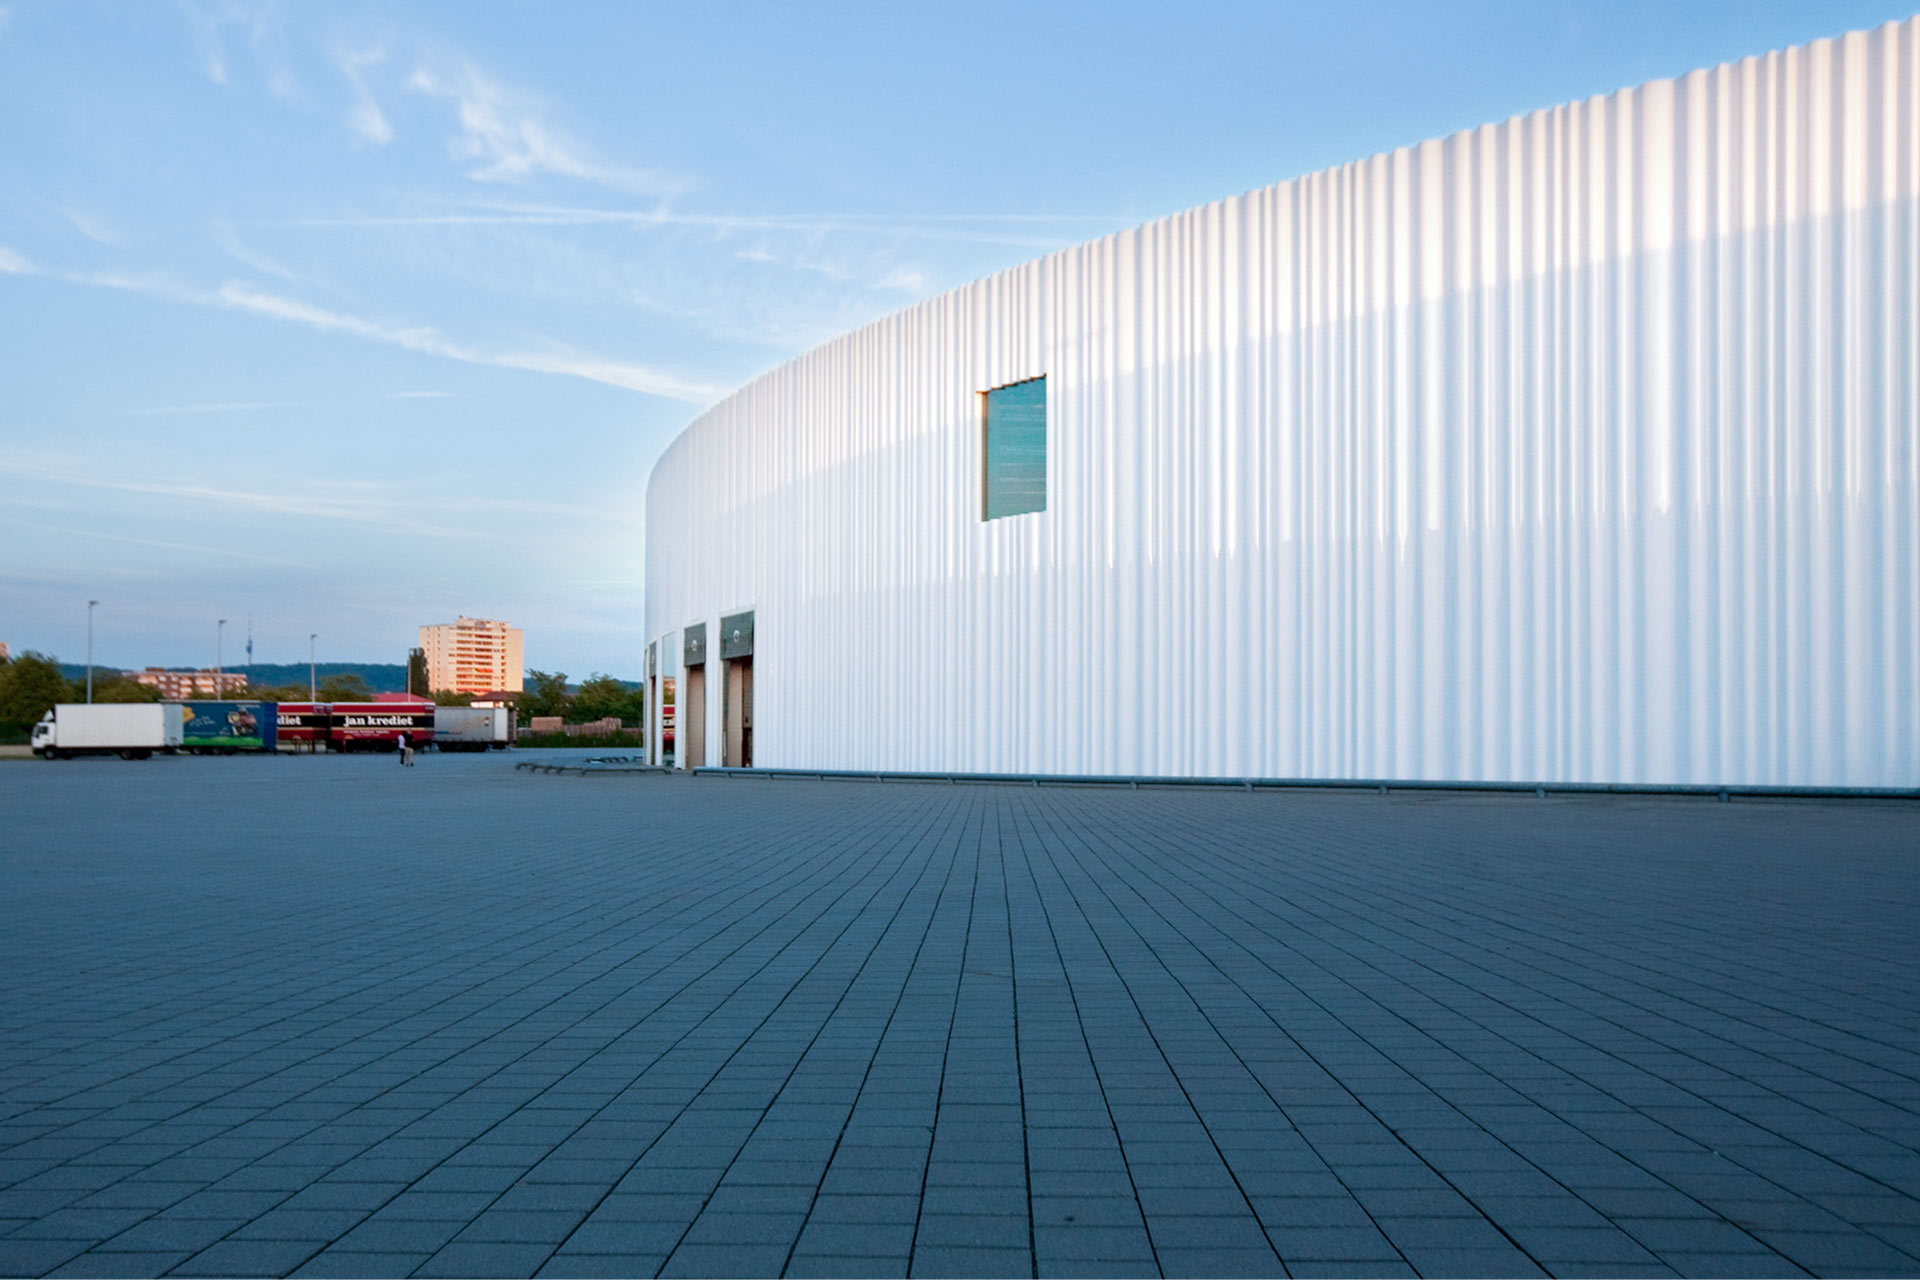 The production hall for logistics on the Vitra Campus according to a design of Sanaa Architects.